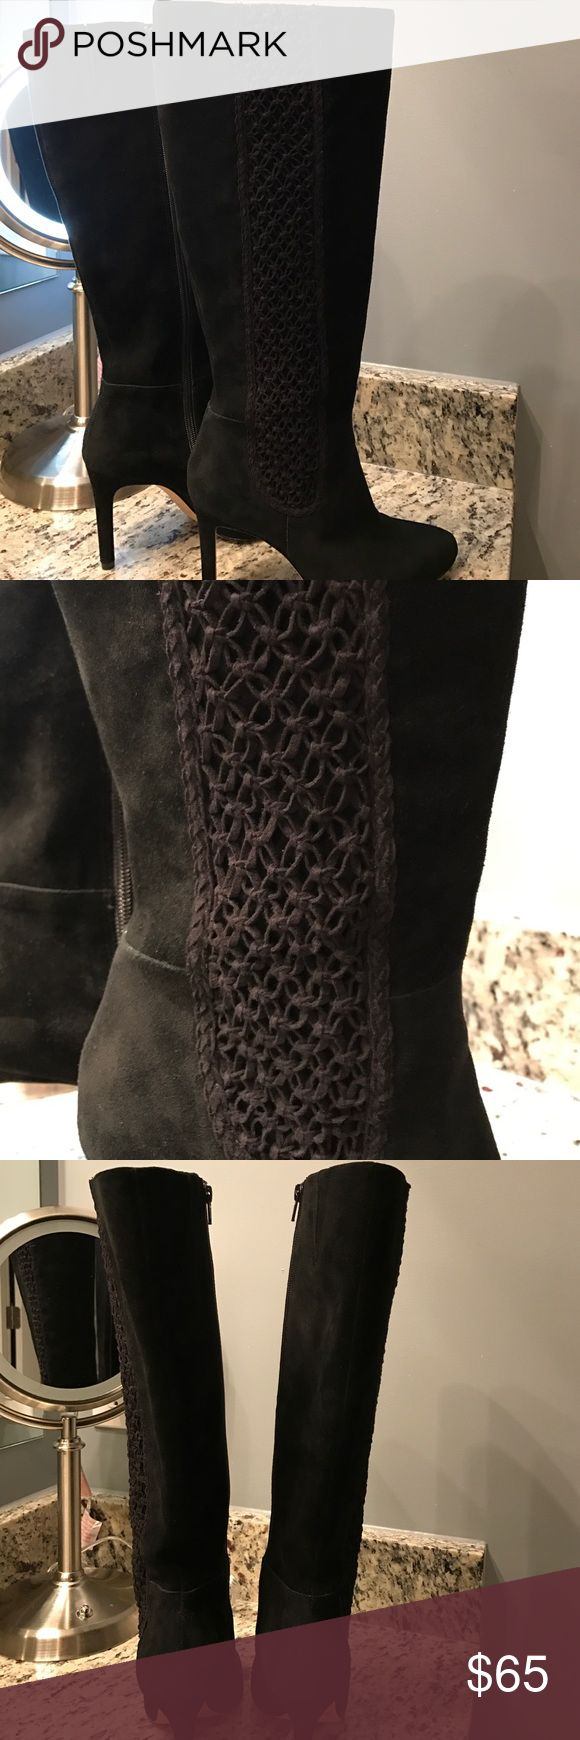 """Black Suede Knee High Boots Antonio Melani black suede knee high boots with weave pattern on the outside of each boot. These are a size 7.5 that I purchased after my bunion surgery because I had to go up a size. I've only worn them one time and these are absolutely beautiful and excellent condition.   Diameter around top is 15"""" and from top to base of boot is 17.5"""" and the heel is 3.5"""". I have small feet and wide calves (an Asian thing) and wear a 6.5. Needs a new owner!😘🙌🏼 ANTONIO MELANI…"""